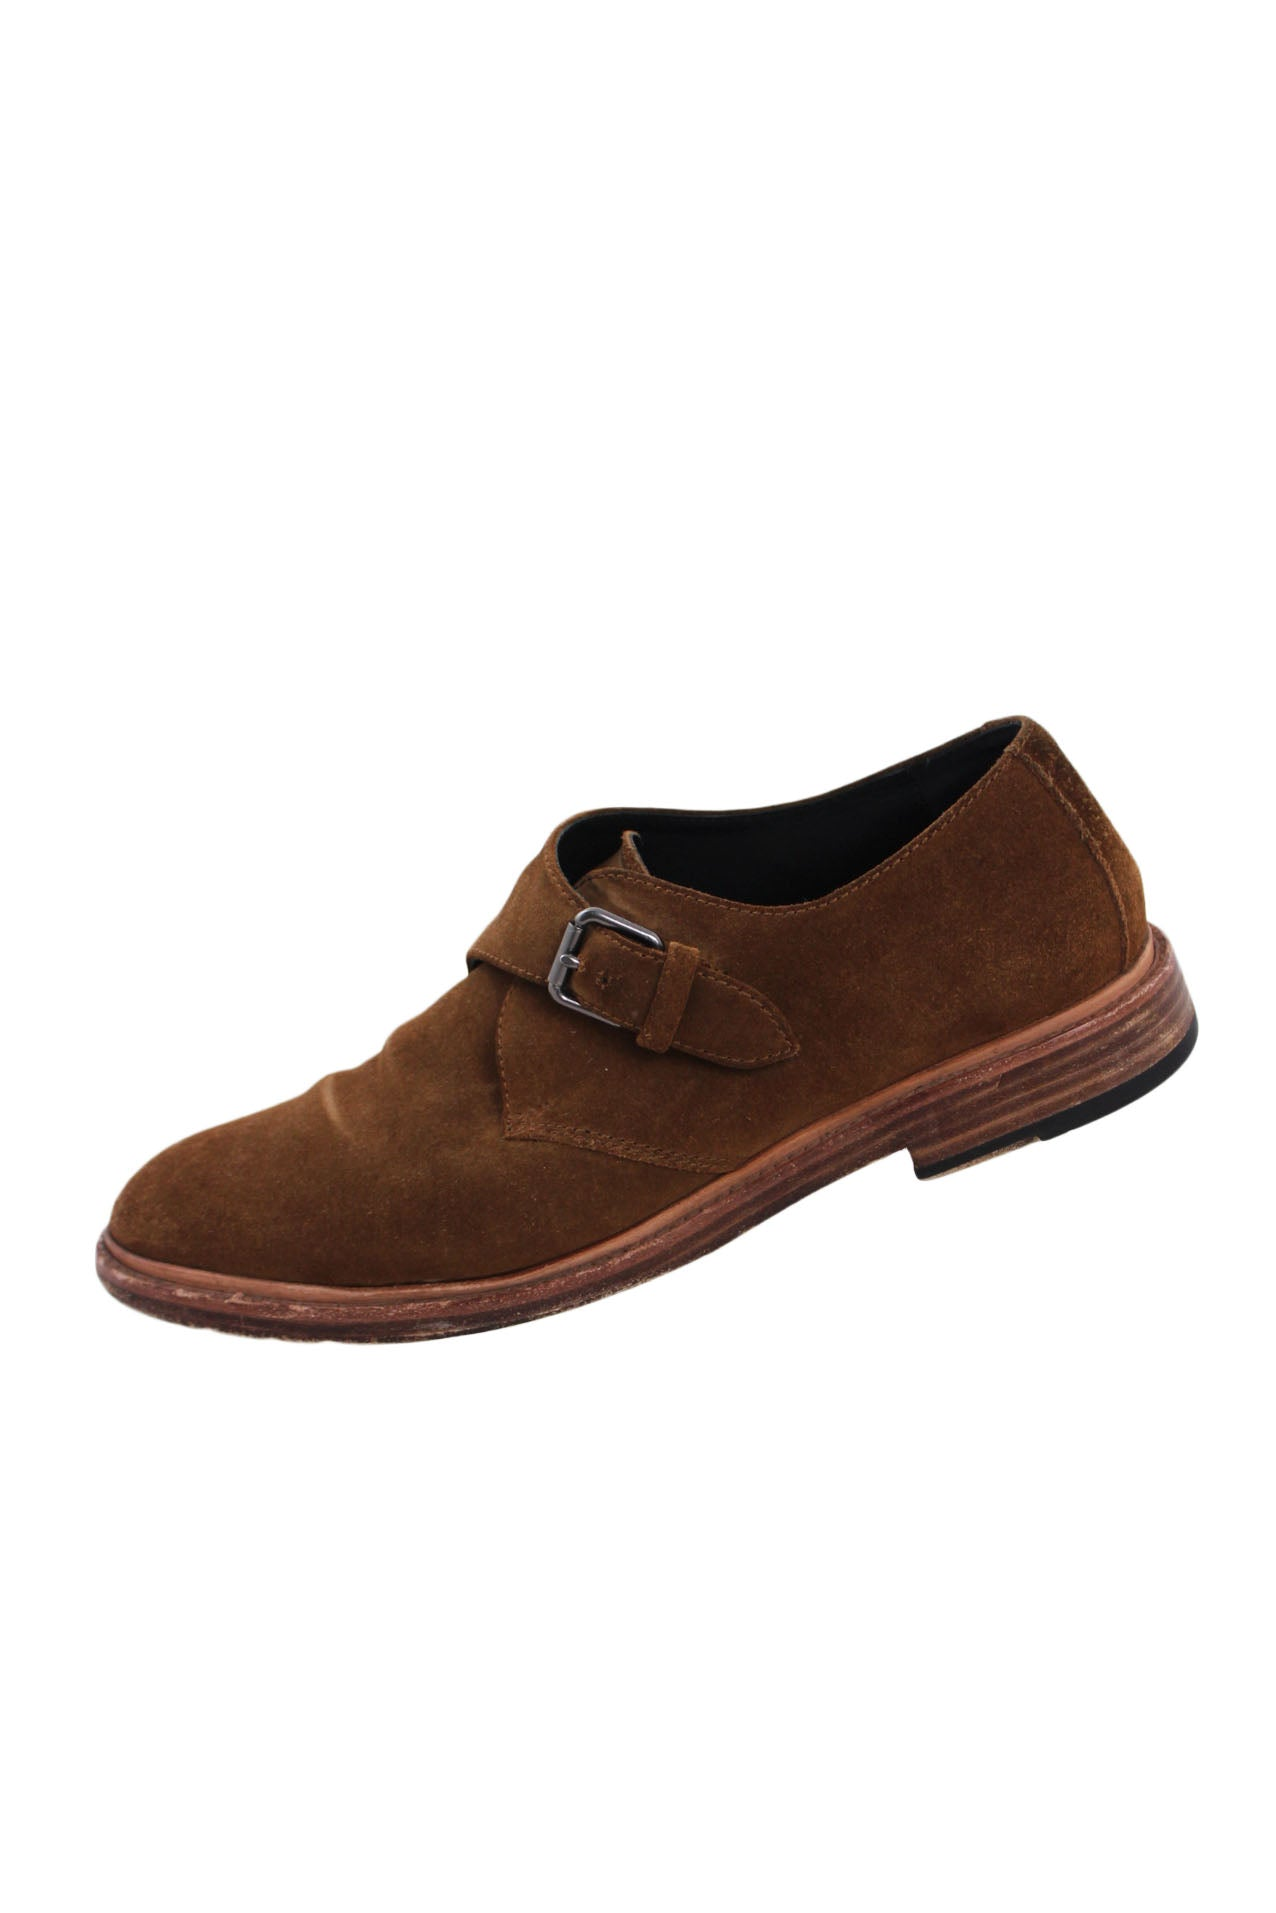 "coach brown suede round toe shoes. features a single monk strap buckle closure with top stitched sole. heel measures ~ 1""."